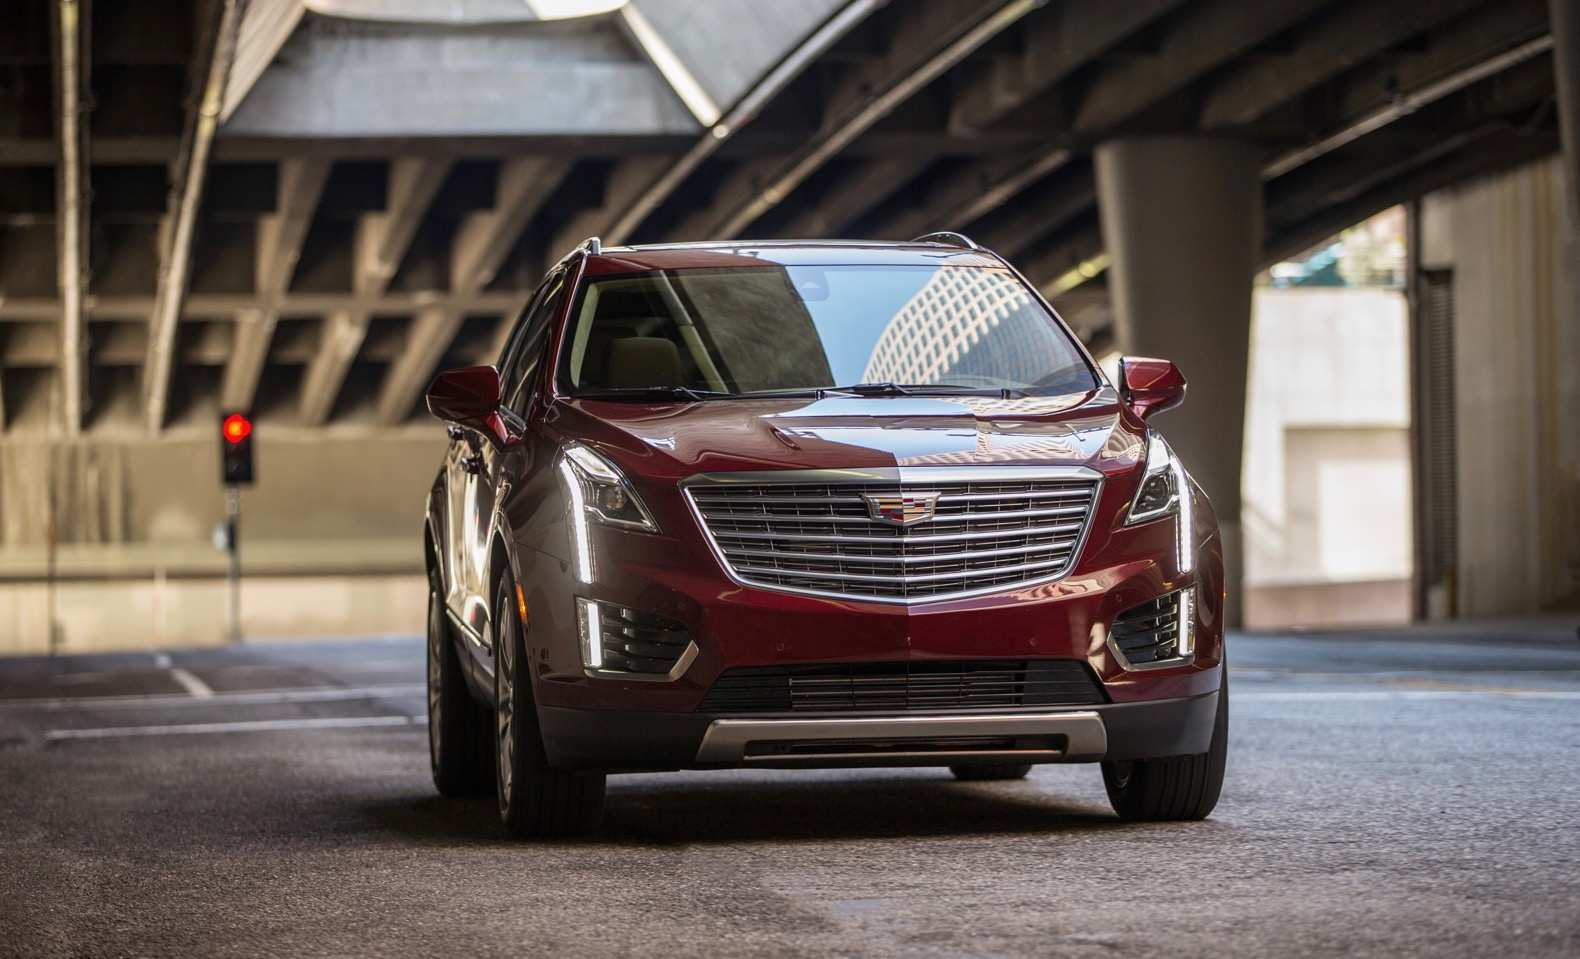 47 Best Review 2019 Cadillac Xt6 Picture for 2019 Cadillac Xt6